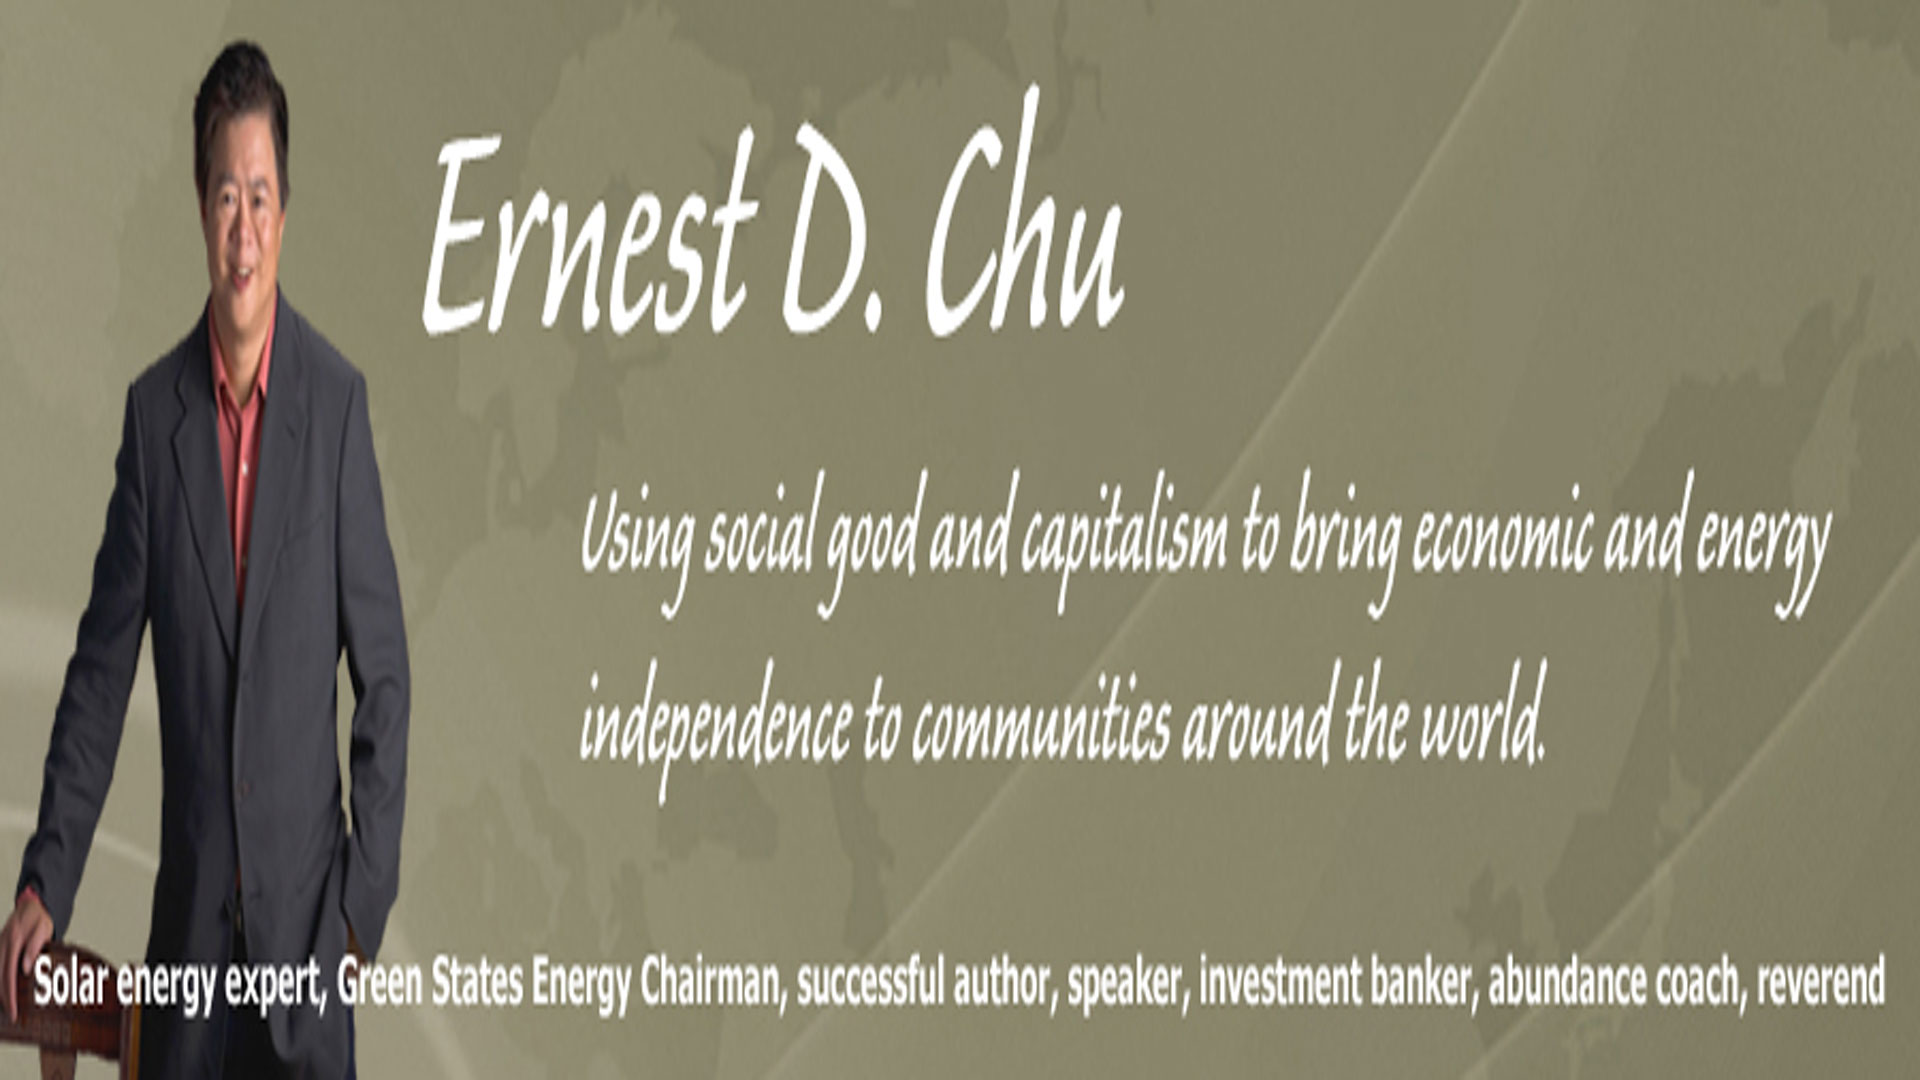 Ernest Chu part 1 of 2